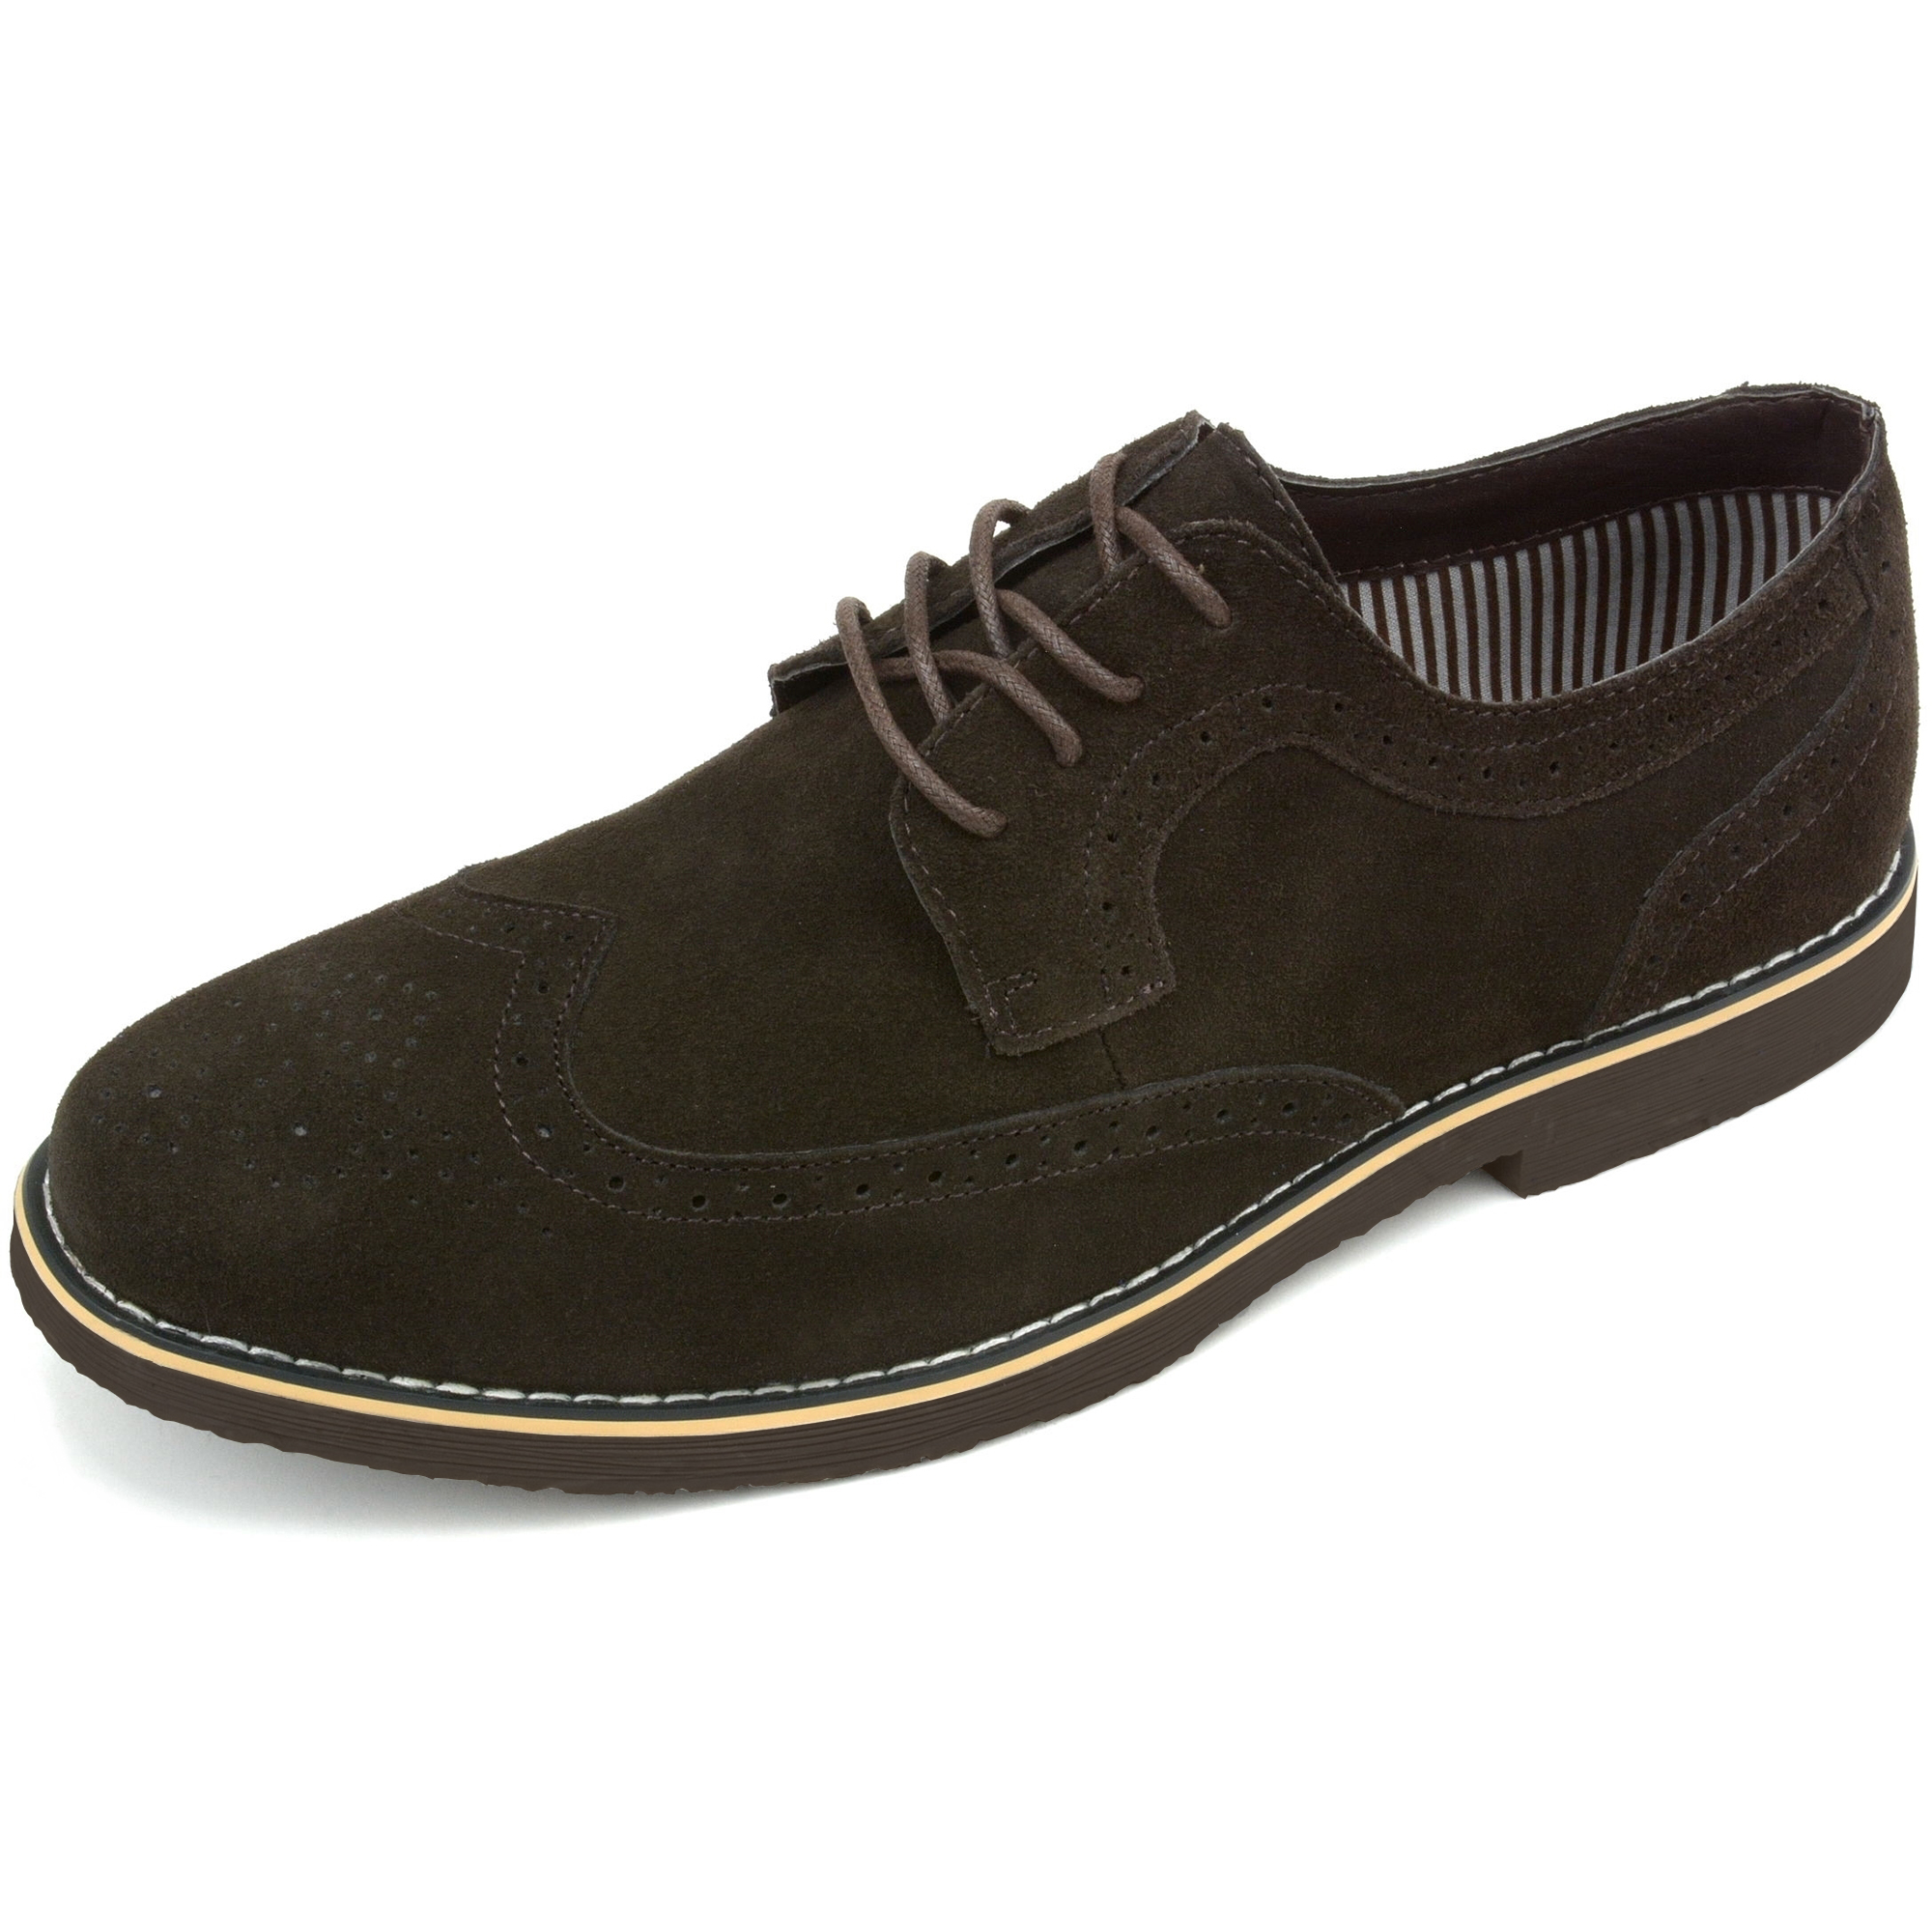 Alpine-Swiss-Beau-Mens-Dress-Shoes-Genuine-Suede-Wing-Tip-Brogue-Lace-Up-Oxfords thumbnail 38